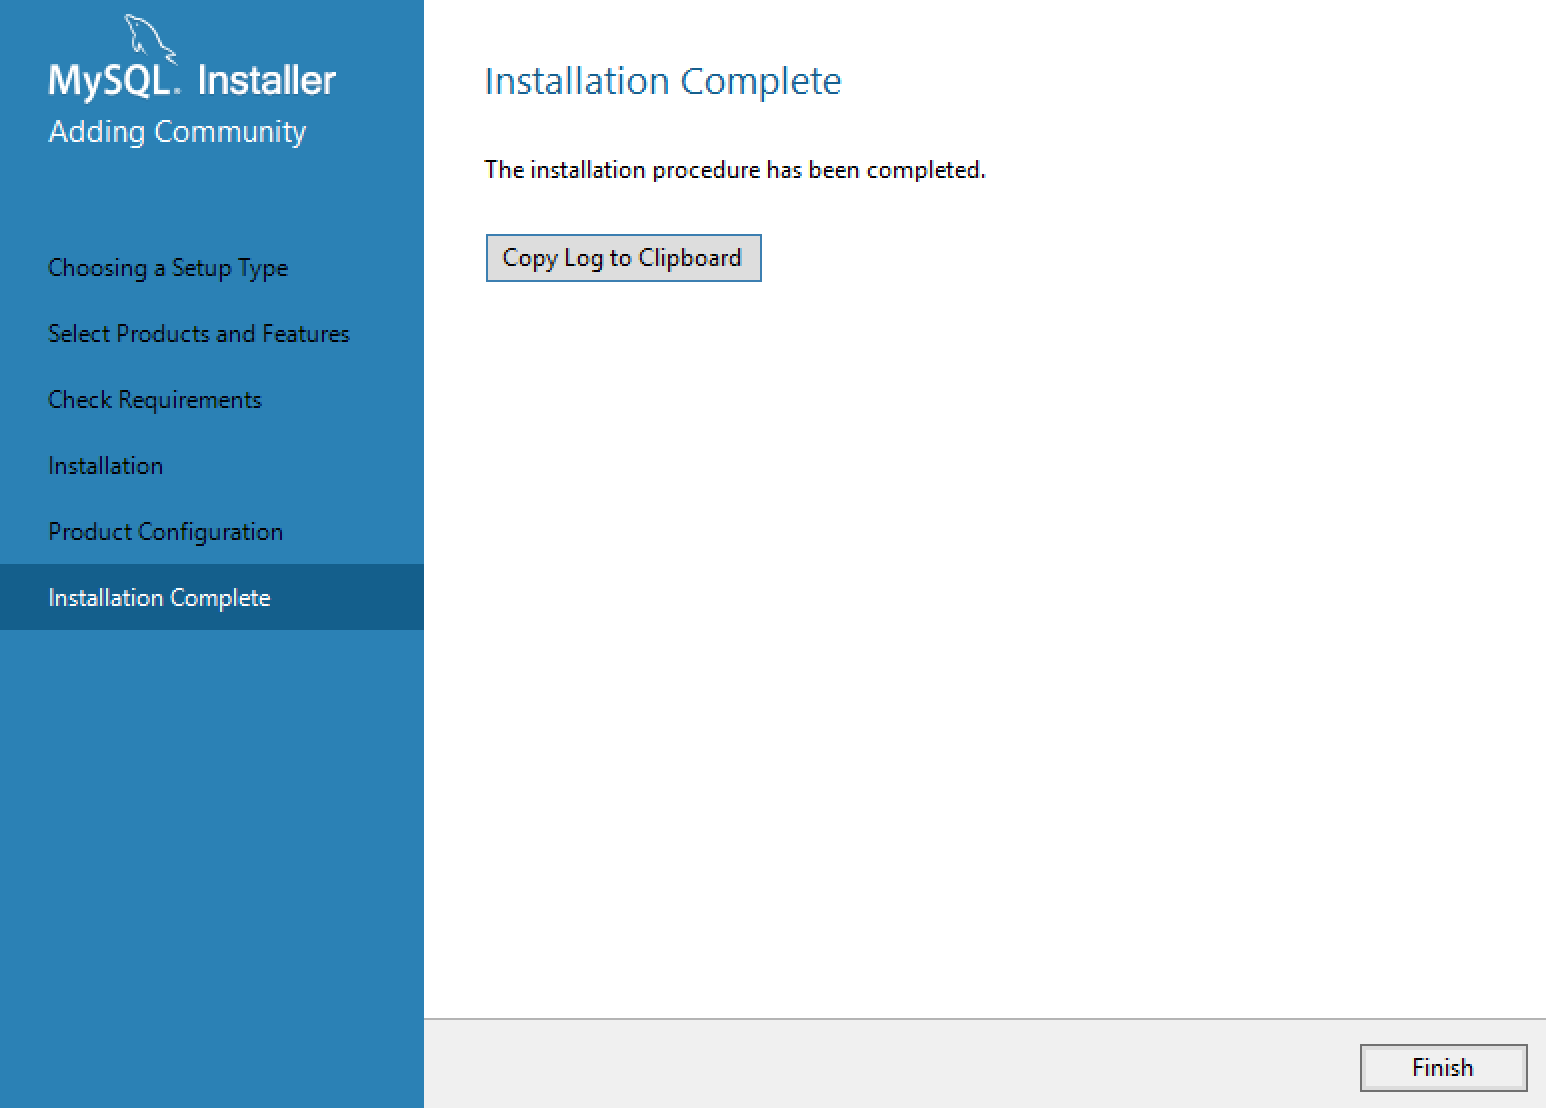 MySQL Installer Finished